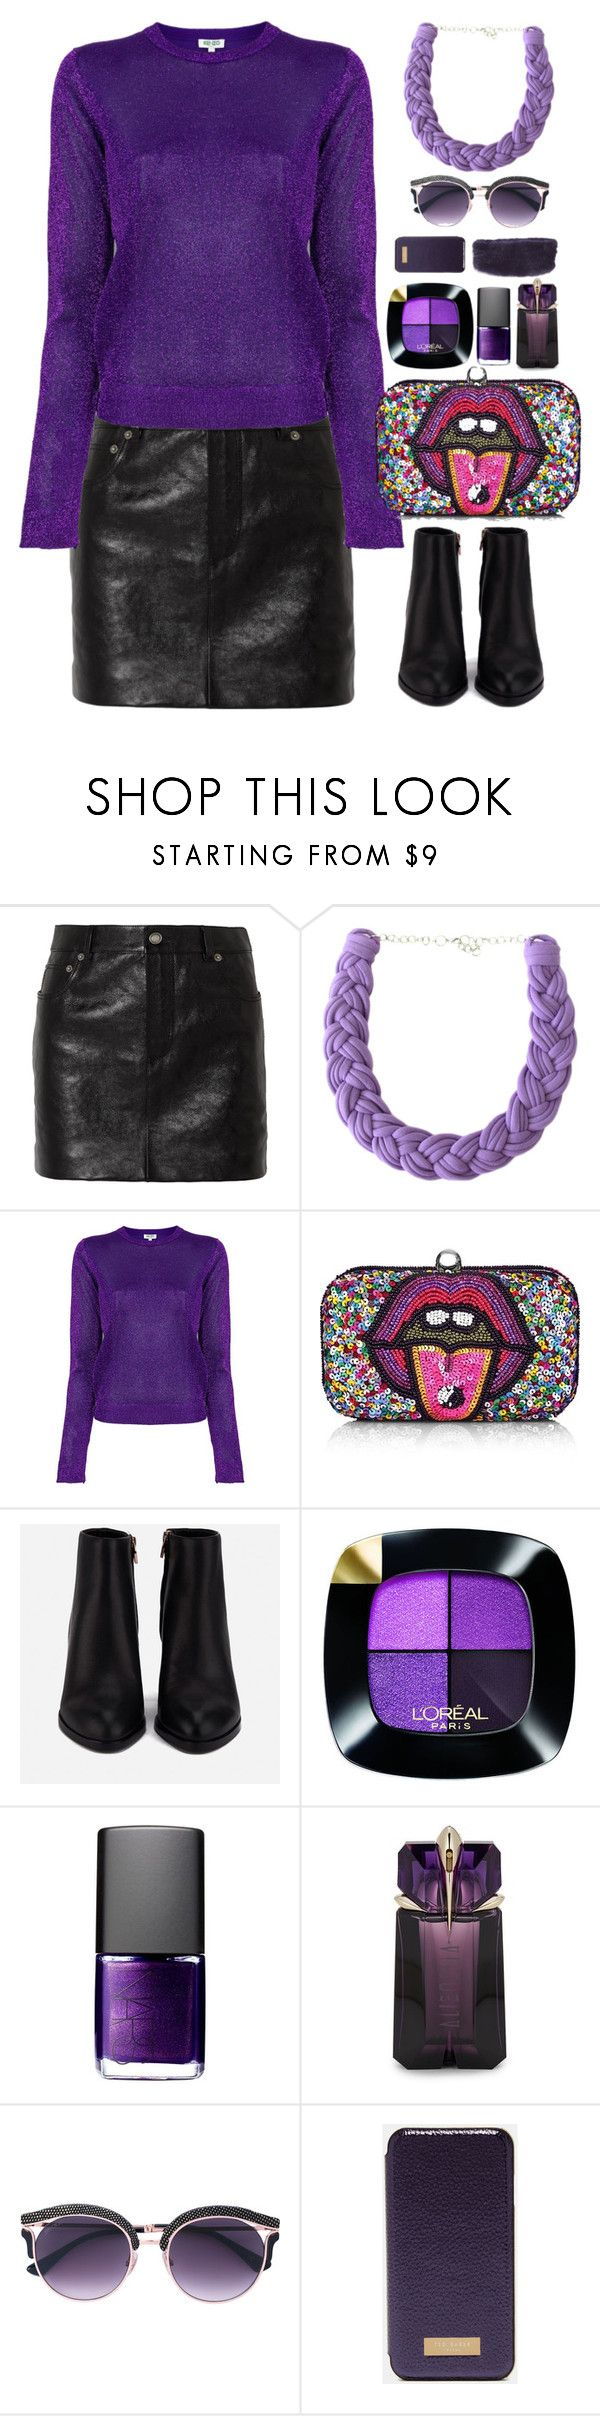 """""""Leather Skirt"""" by gicreazioni ❤ liked on Polyvore featuring Yves Saint Laurent, Kenzo, From St Xavier, Alexander Wang, L'Oréal Paris, NARS Cosmetics, Thierry Mugler, Ted Baker and The Fur Salon"""